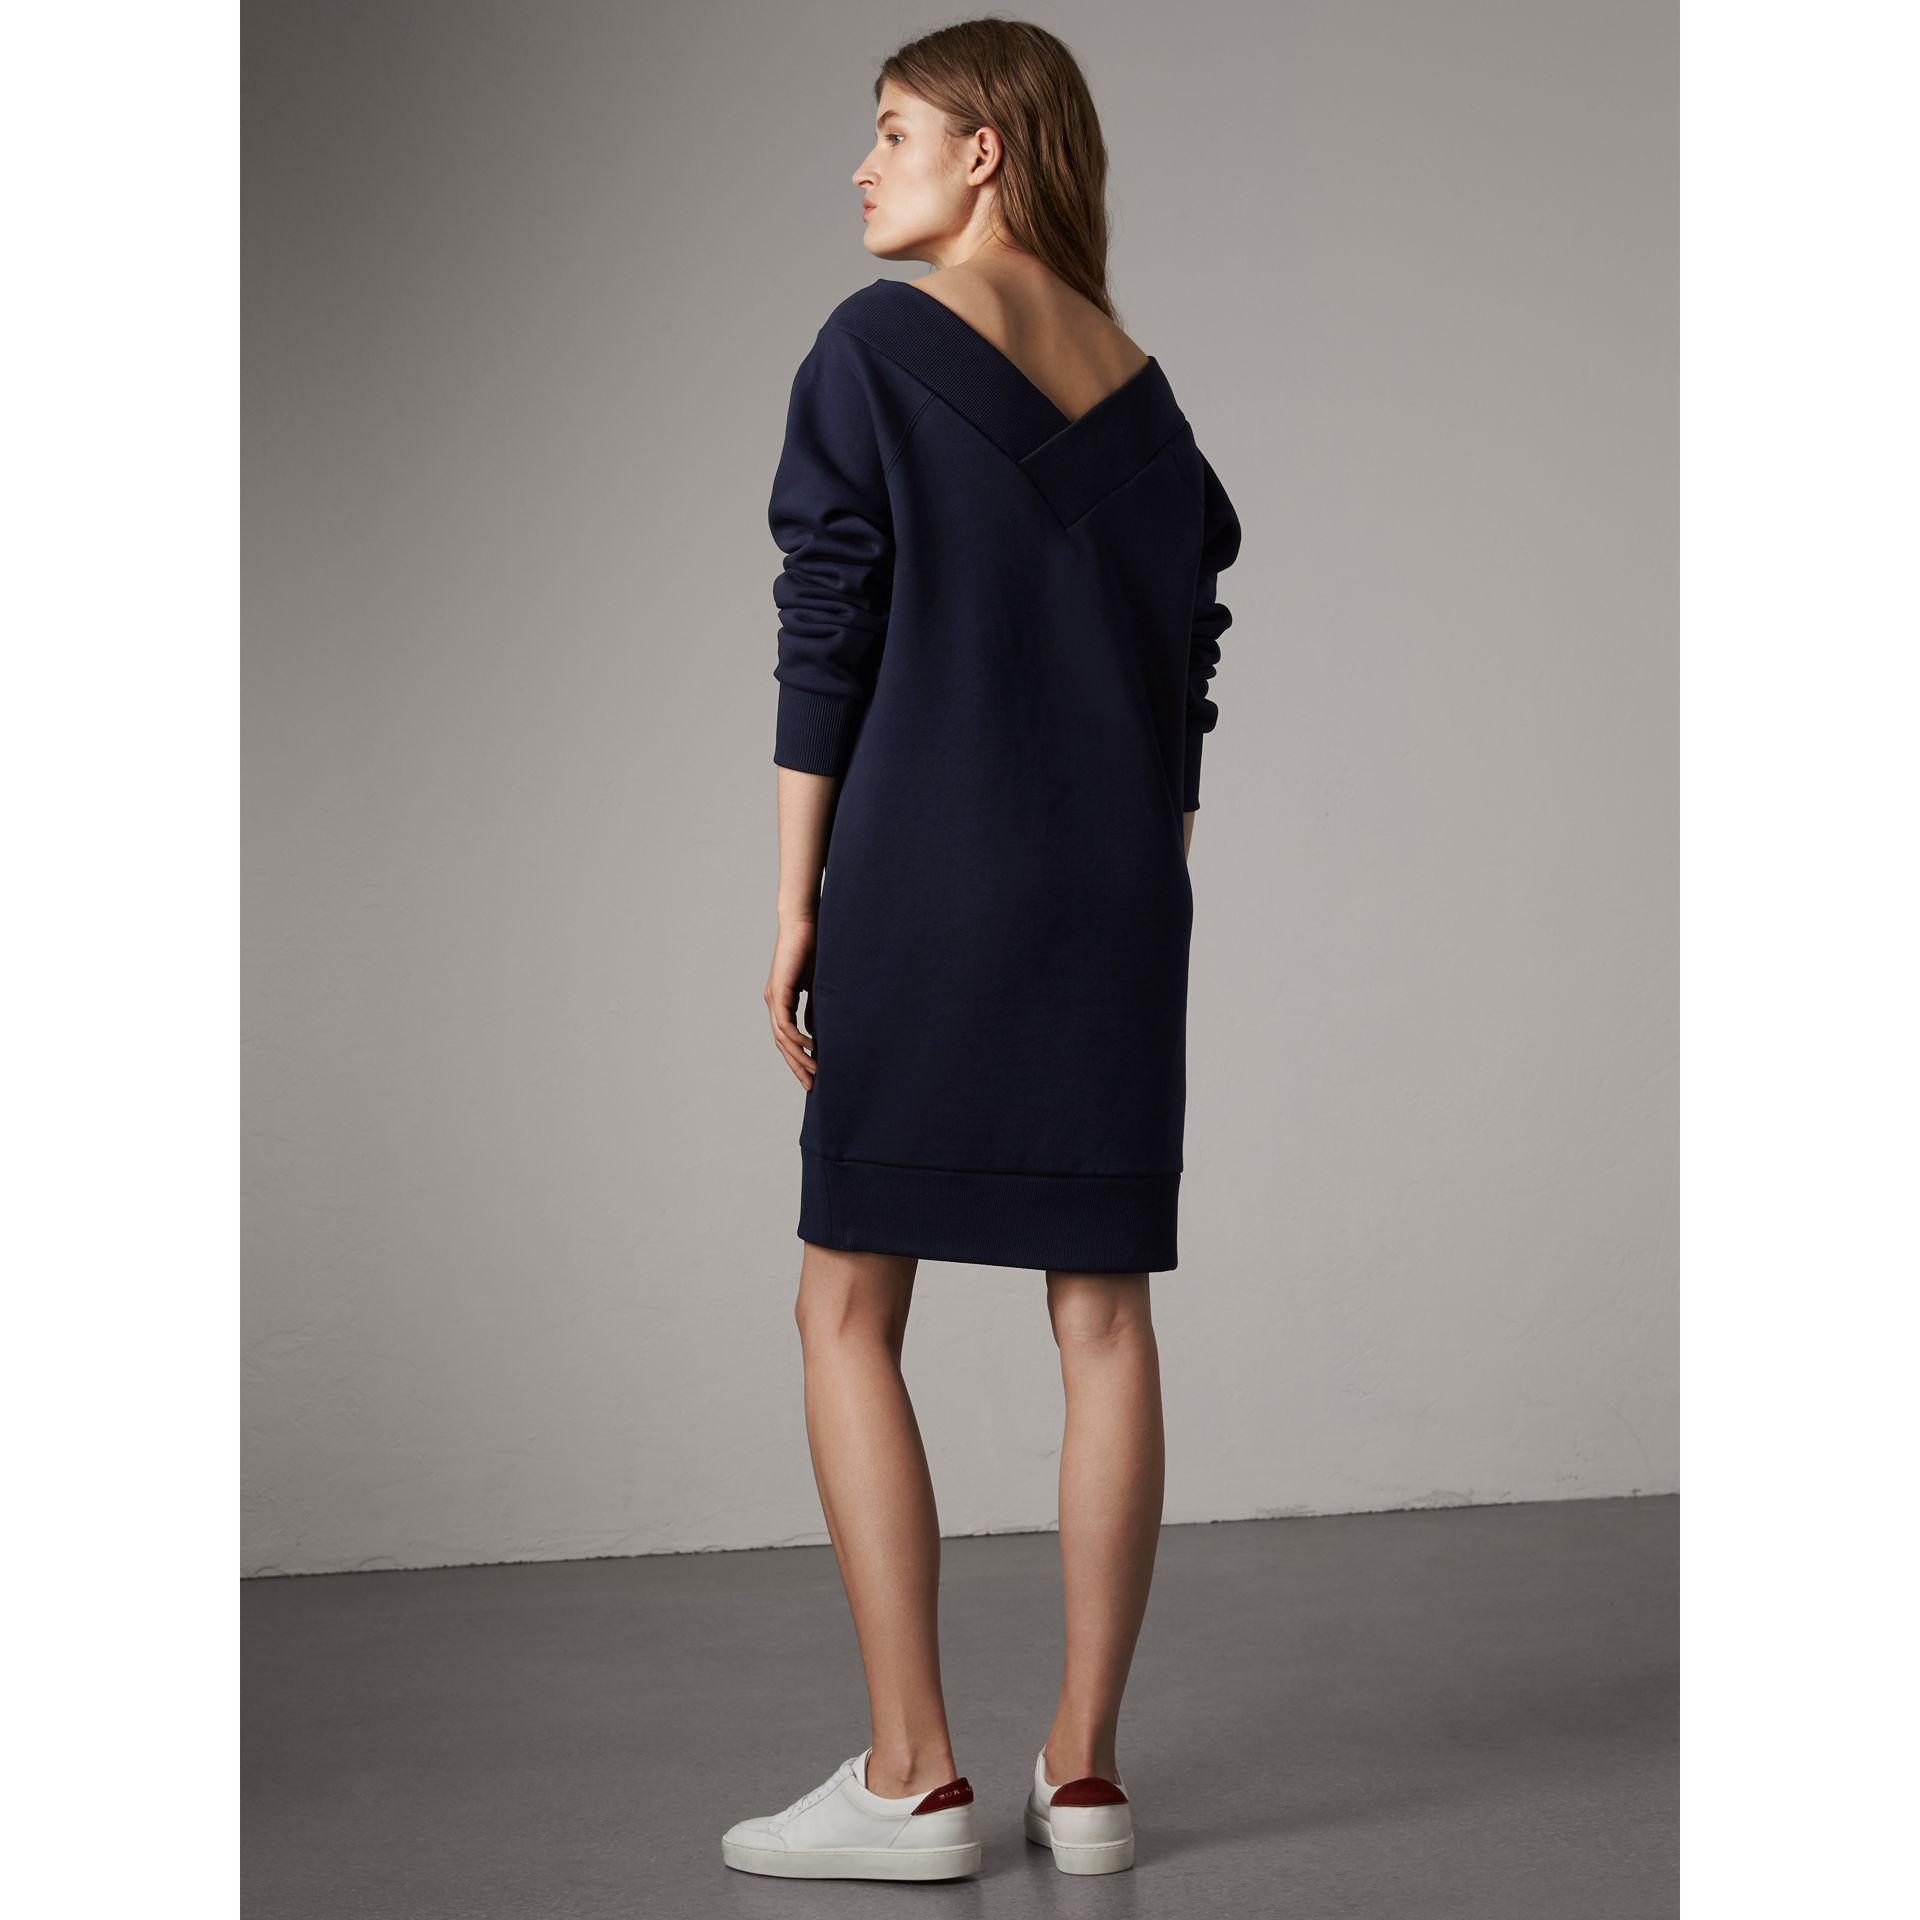 Cotton Blend V-neck Sweater Dress in Navy - Women | Burberry - gallery image 2